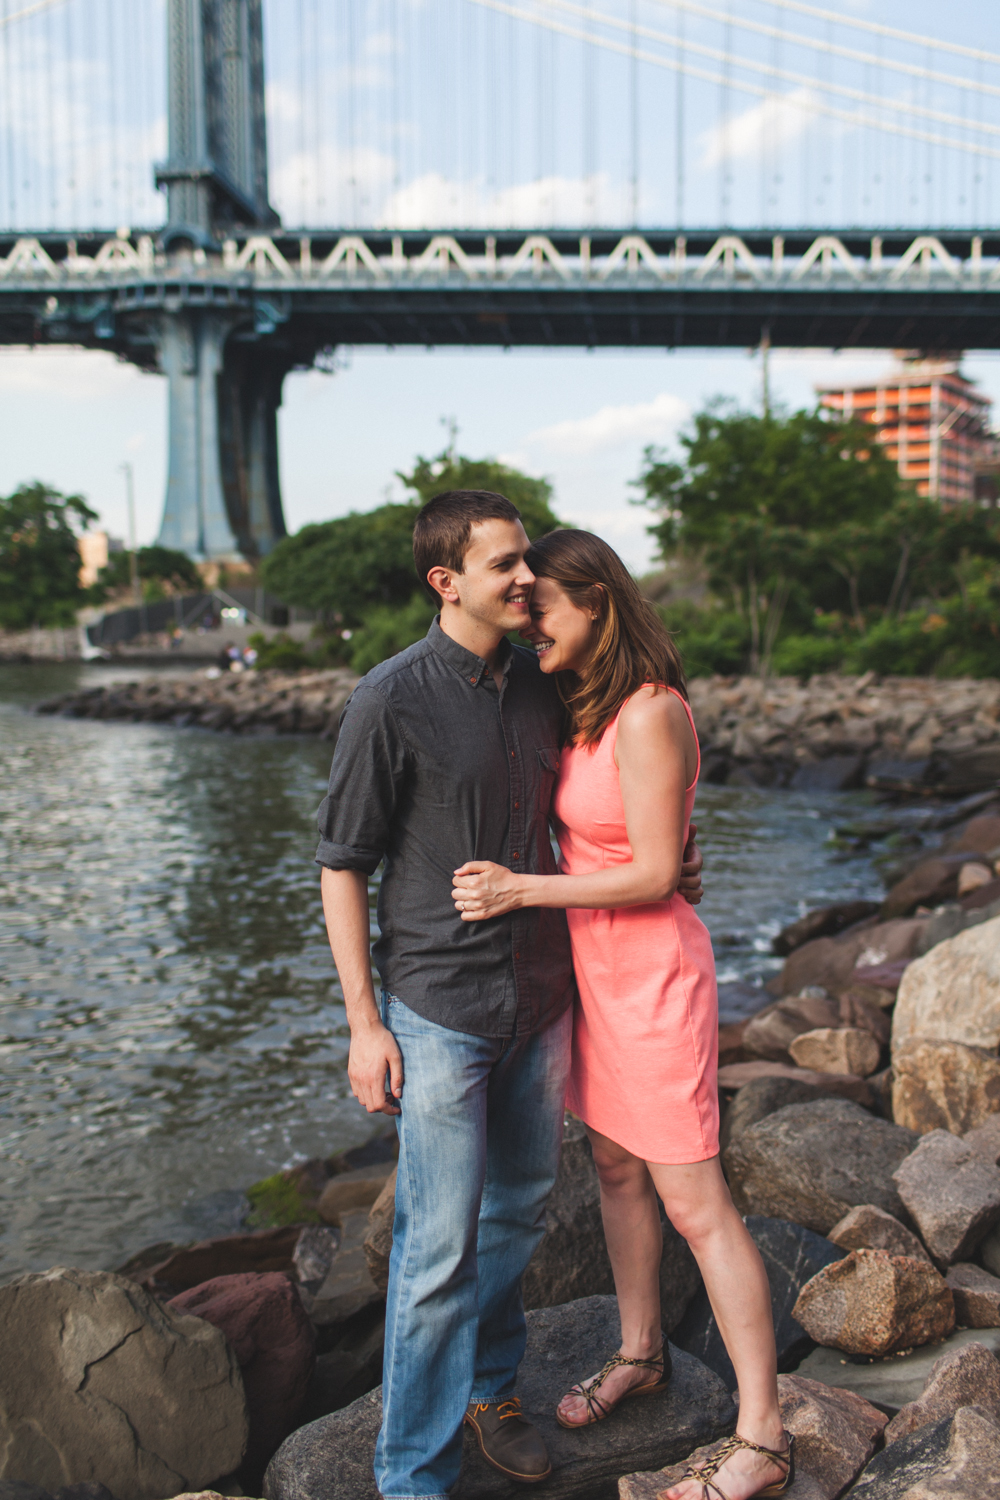 Dumbo-Brooklyn-Bridge-Bookstore-Engagement-Photos-Elvira-Kalviste-Photography-11.jpg